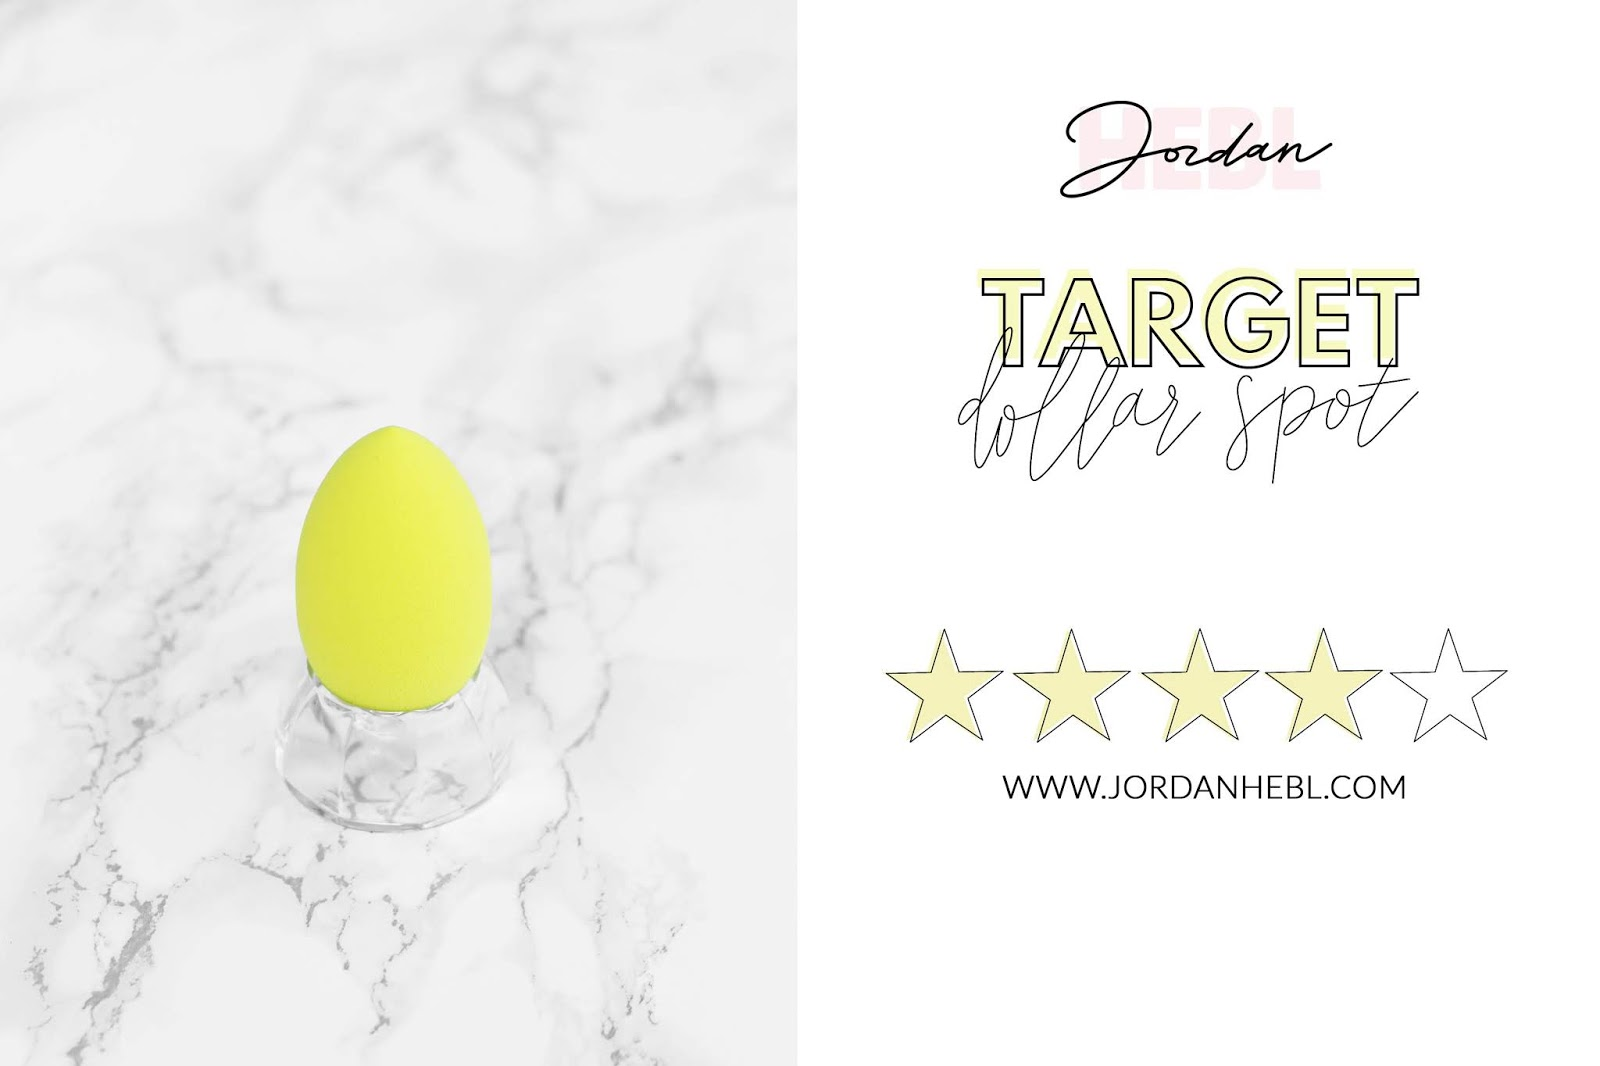 Target dollar spot makeup sponge, comparing makeup sponges, green makeup sponge with marble background, beauty comparisons, beauty blogger